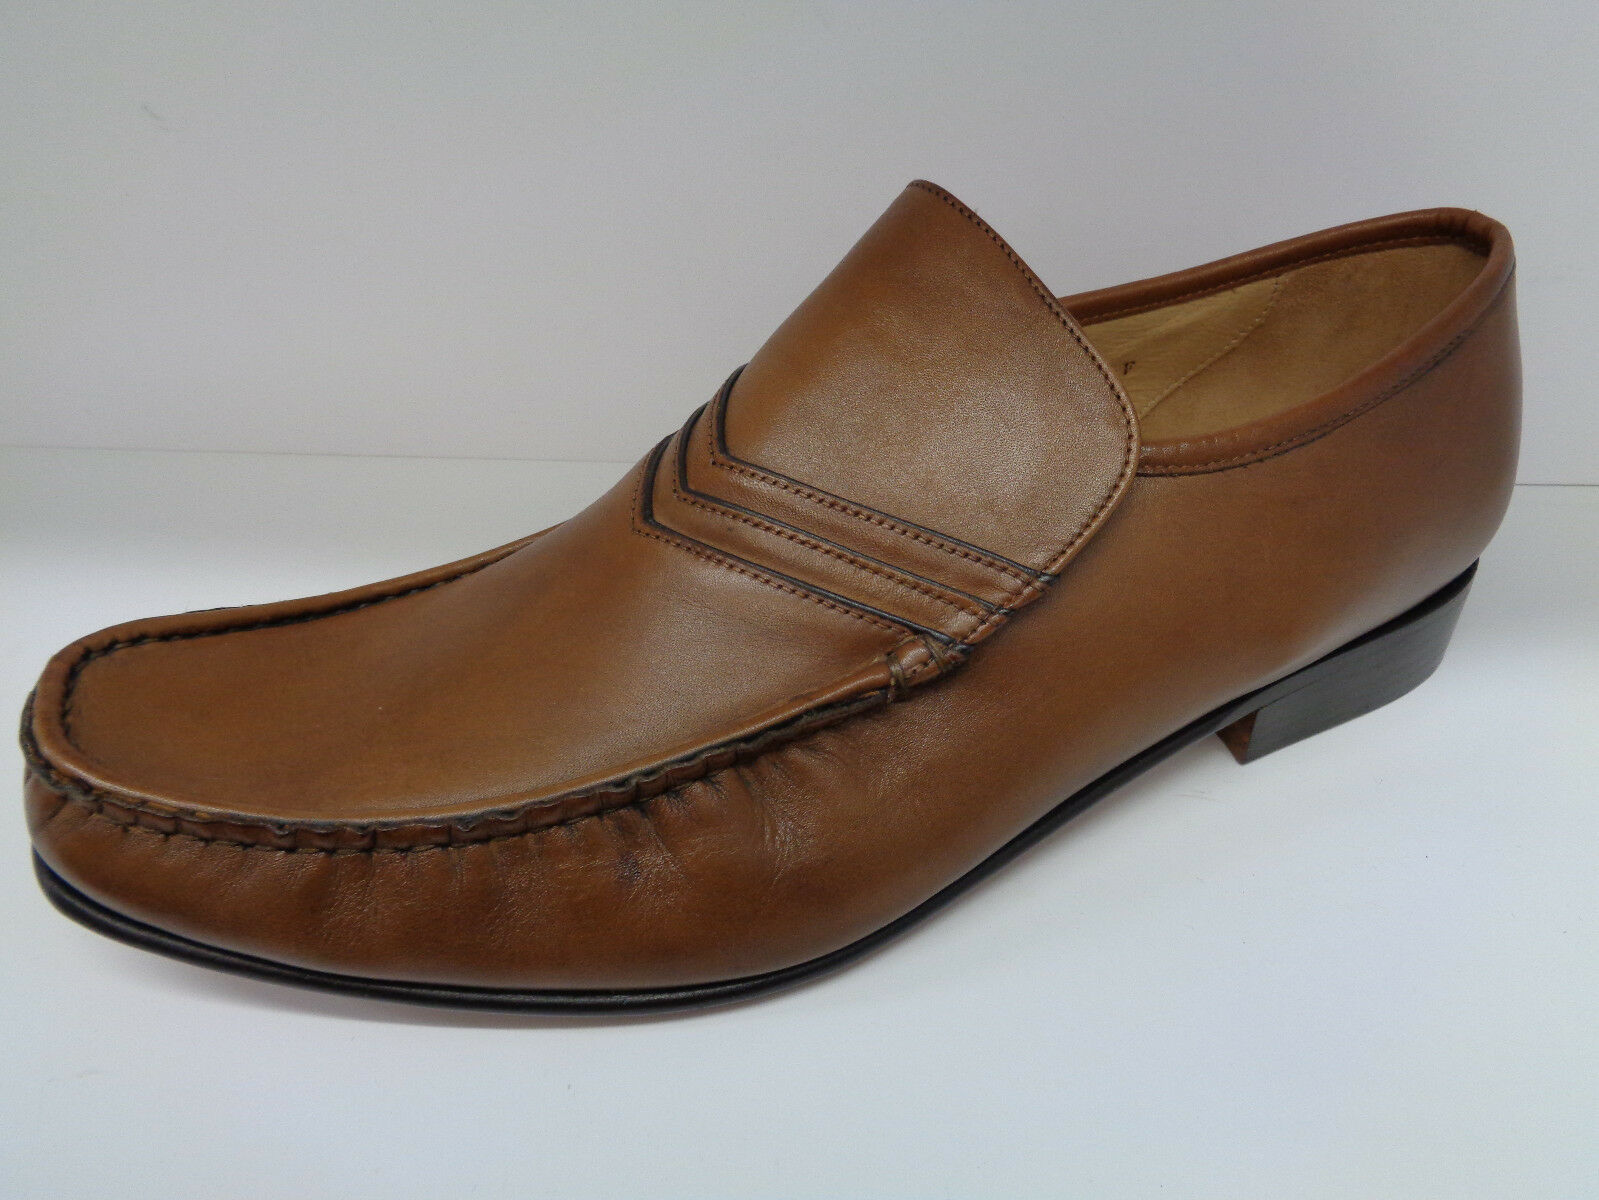 Mens Brown Leather Slip On Grenson Formal shoes UK 10.5F Idaho (SHOP SOILED)